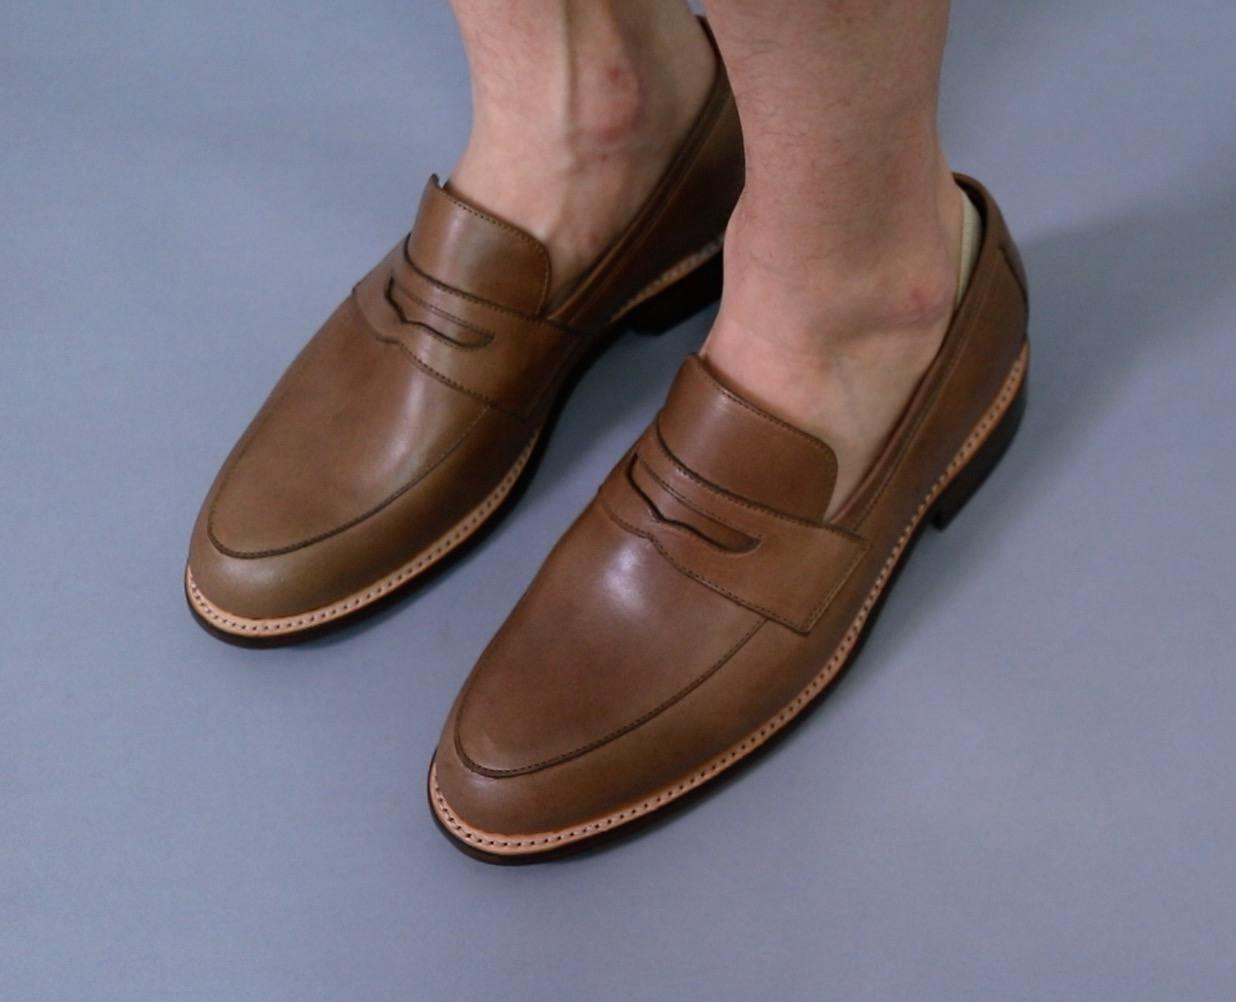 Casual loafers are great shoes to wear with shorts